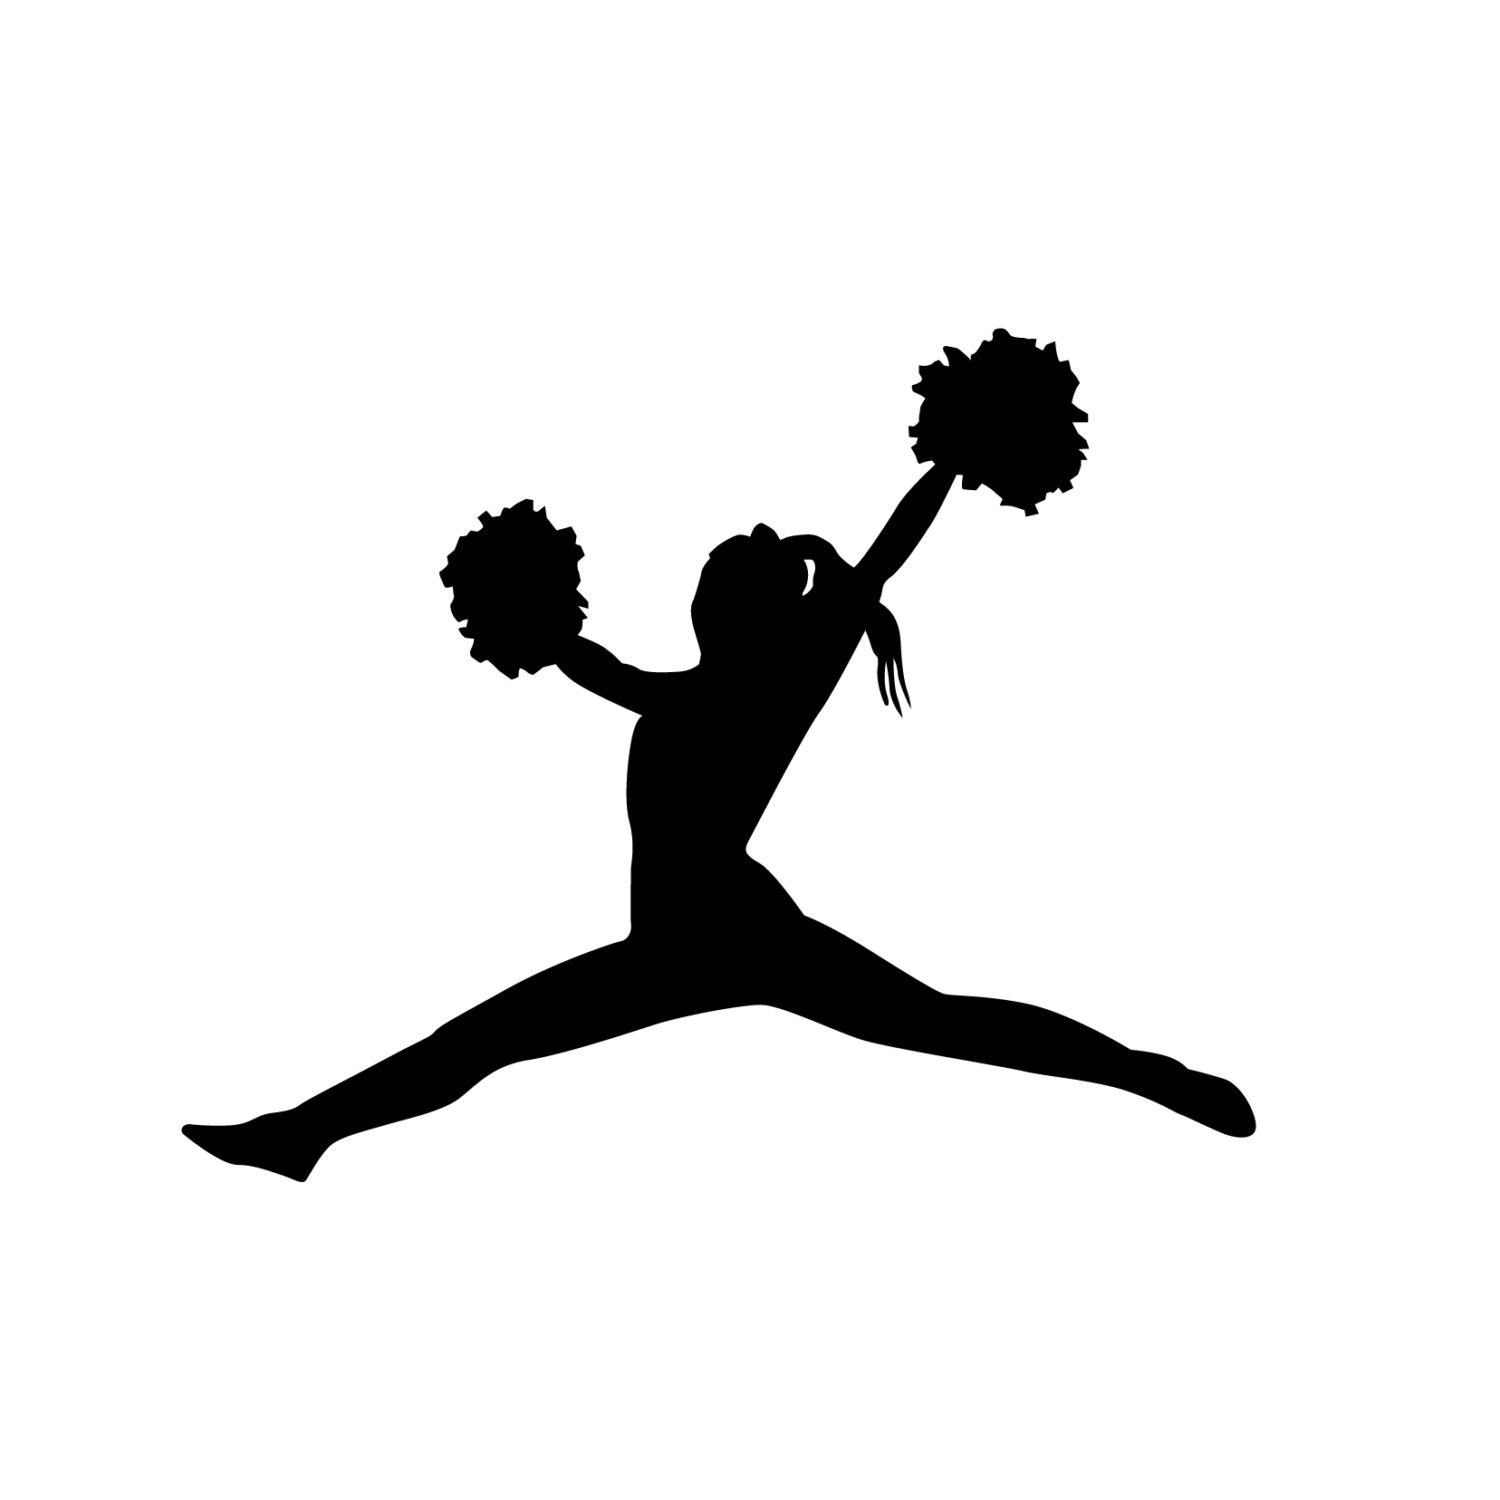 cheerleader toe touch jump silhouette sports wall decal